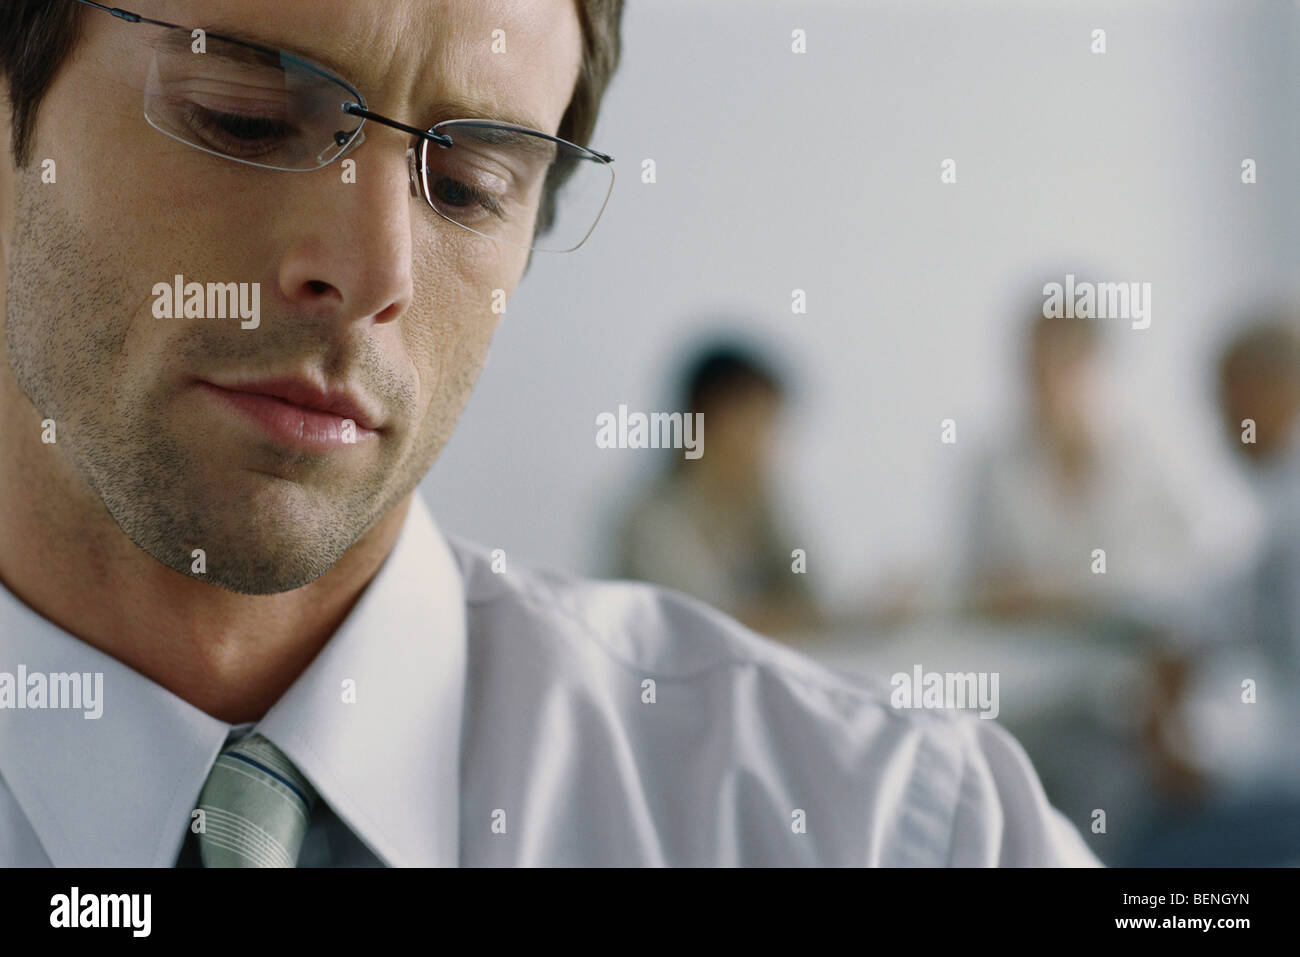 26a147fdc145 Furrowed Brow Stock Photos   Furrowed Brow Stock Images - Alamy